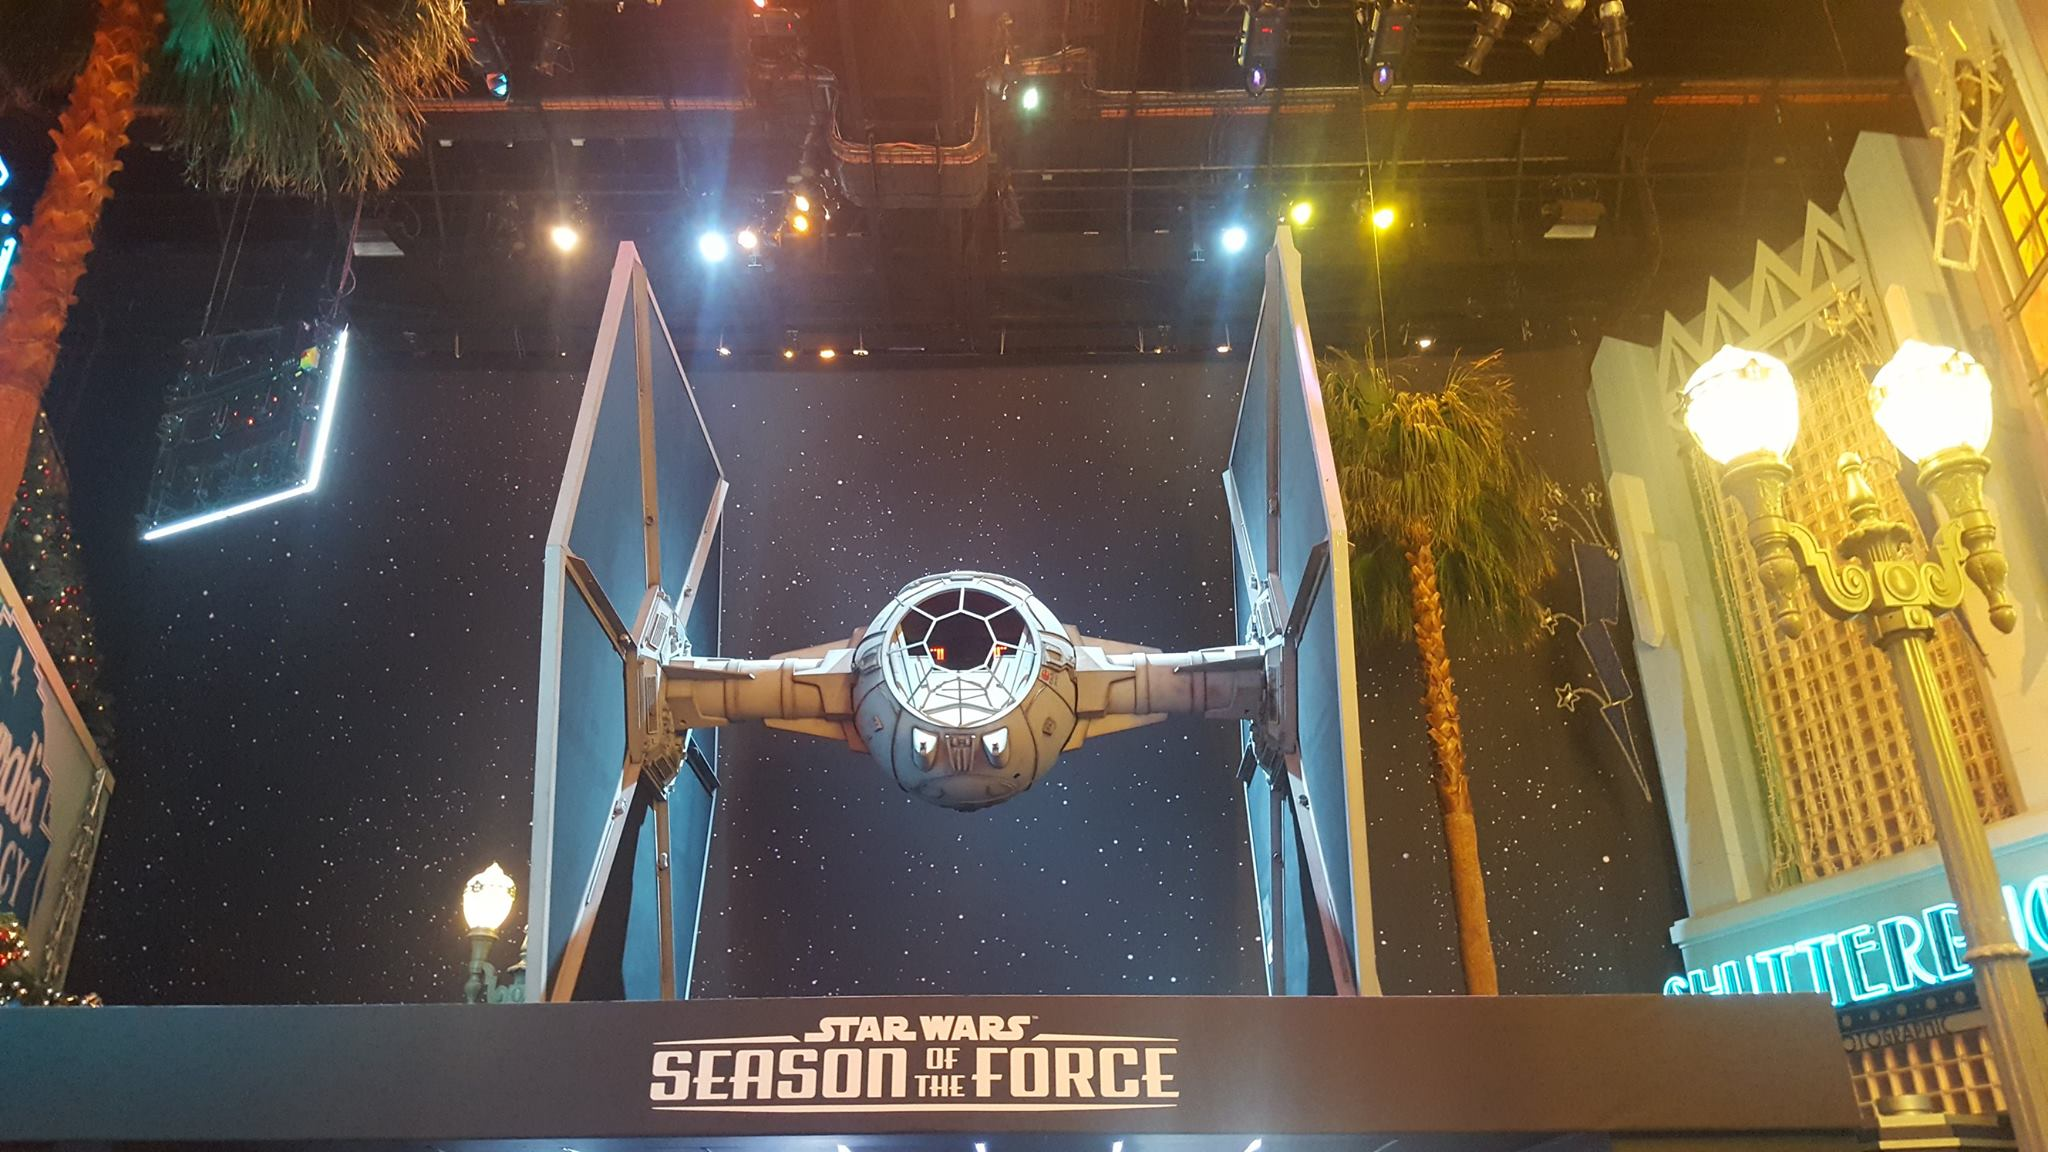 Vaisseau Star Wars - Saison de la force - Disneyland Paris - 2018